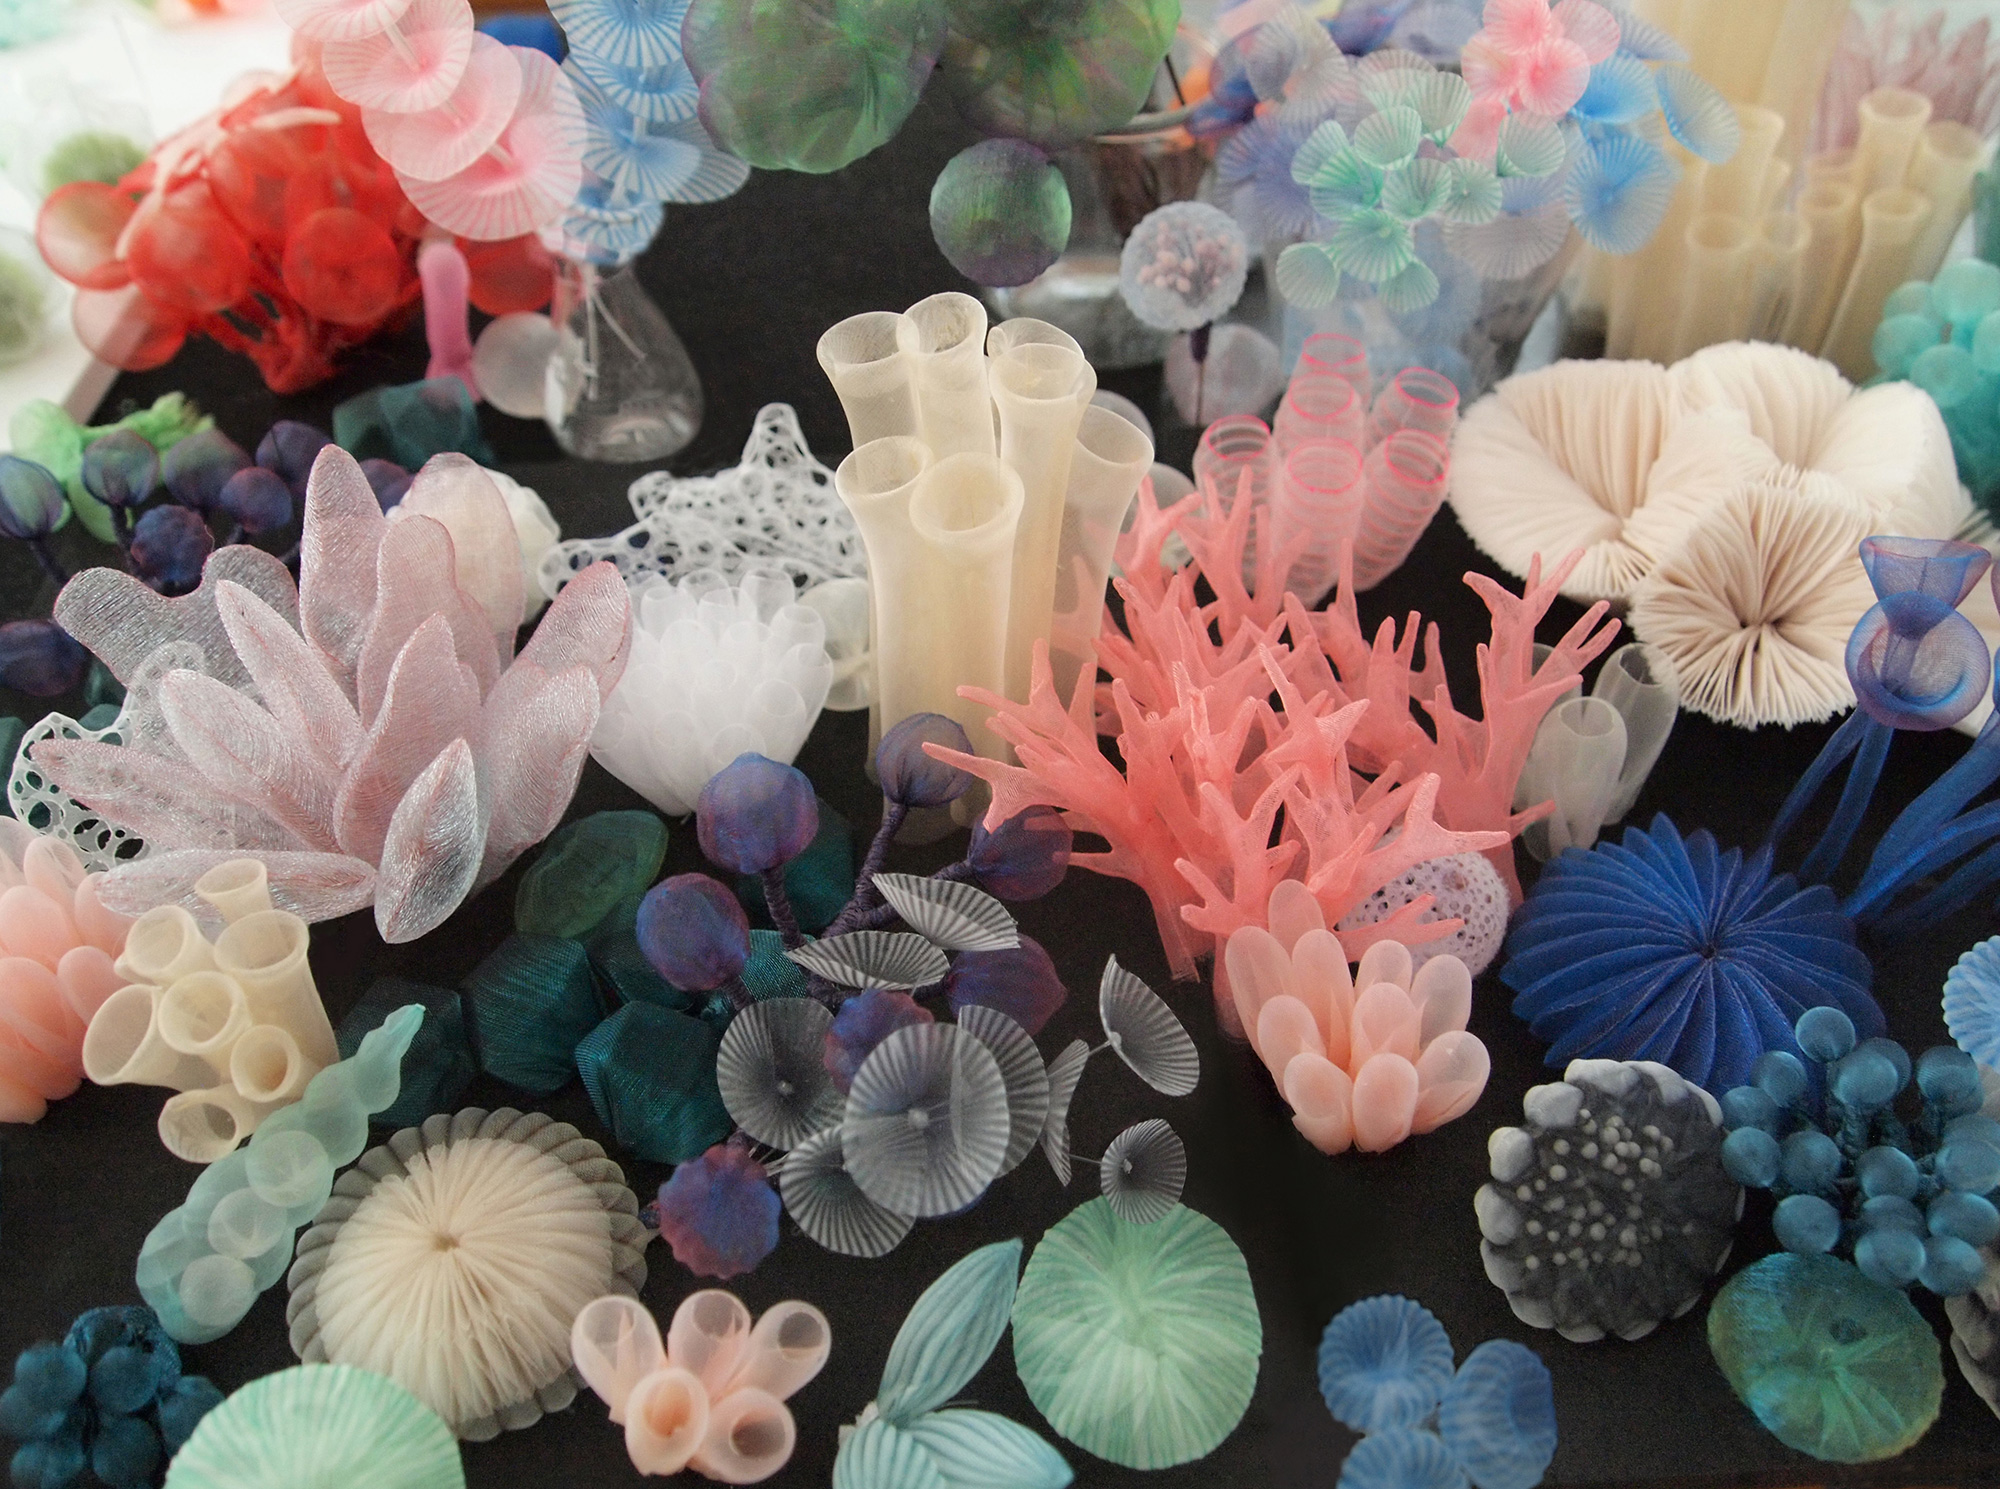 Translucent Textiles Cast Organisms and Mundane Objects as Dreamy Sculptures and Wearables